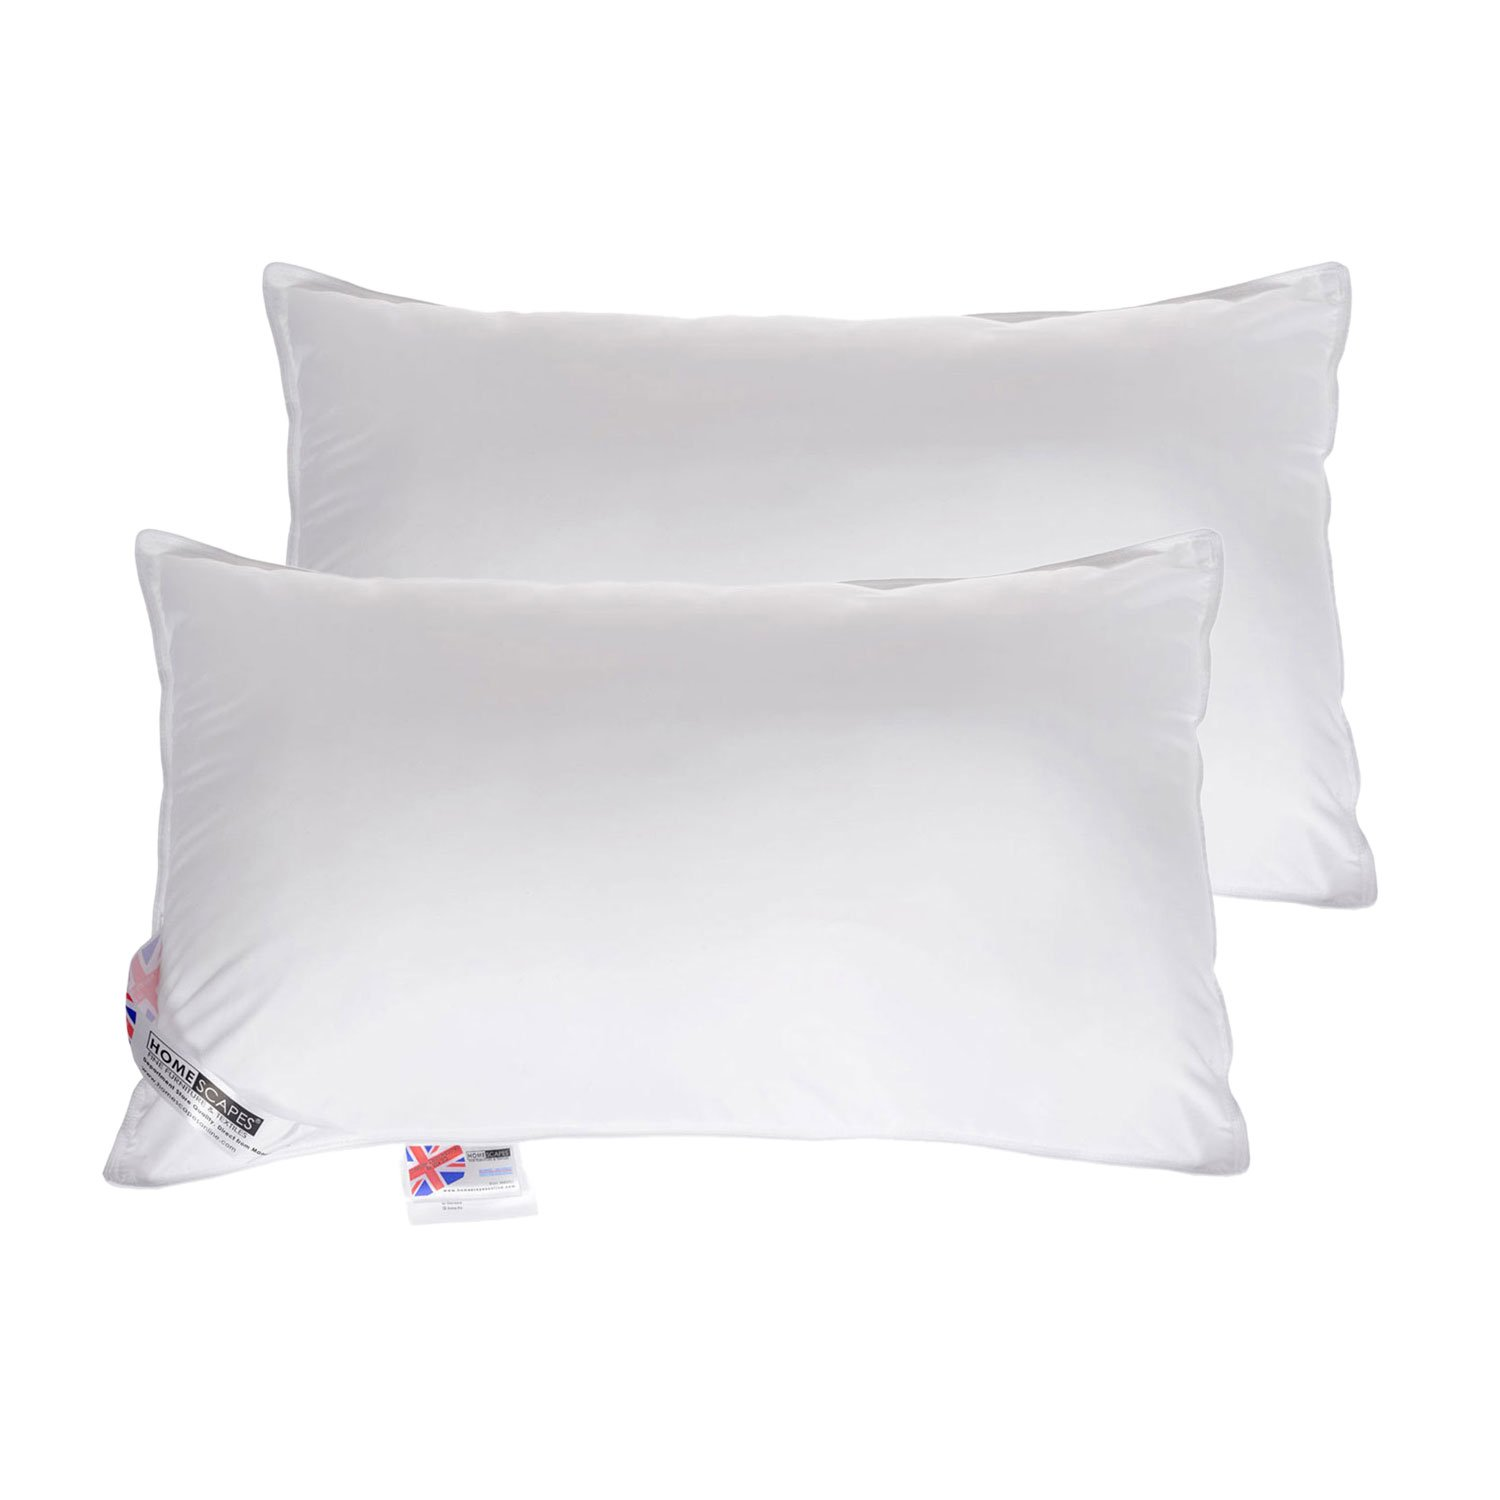 pillows back bounce full of microfibre design pillow size image